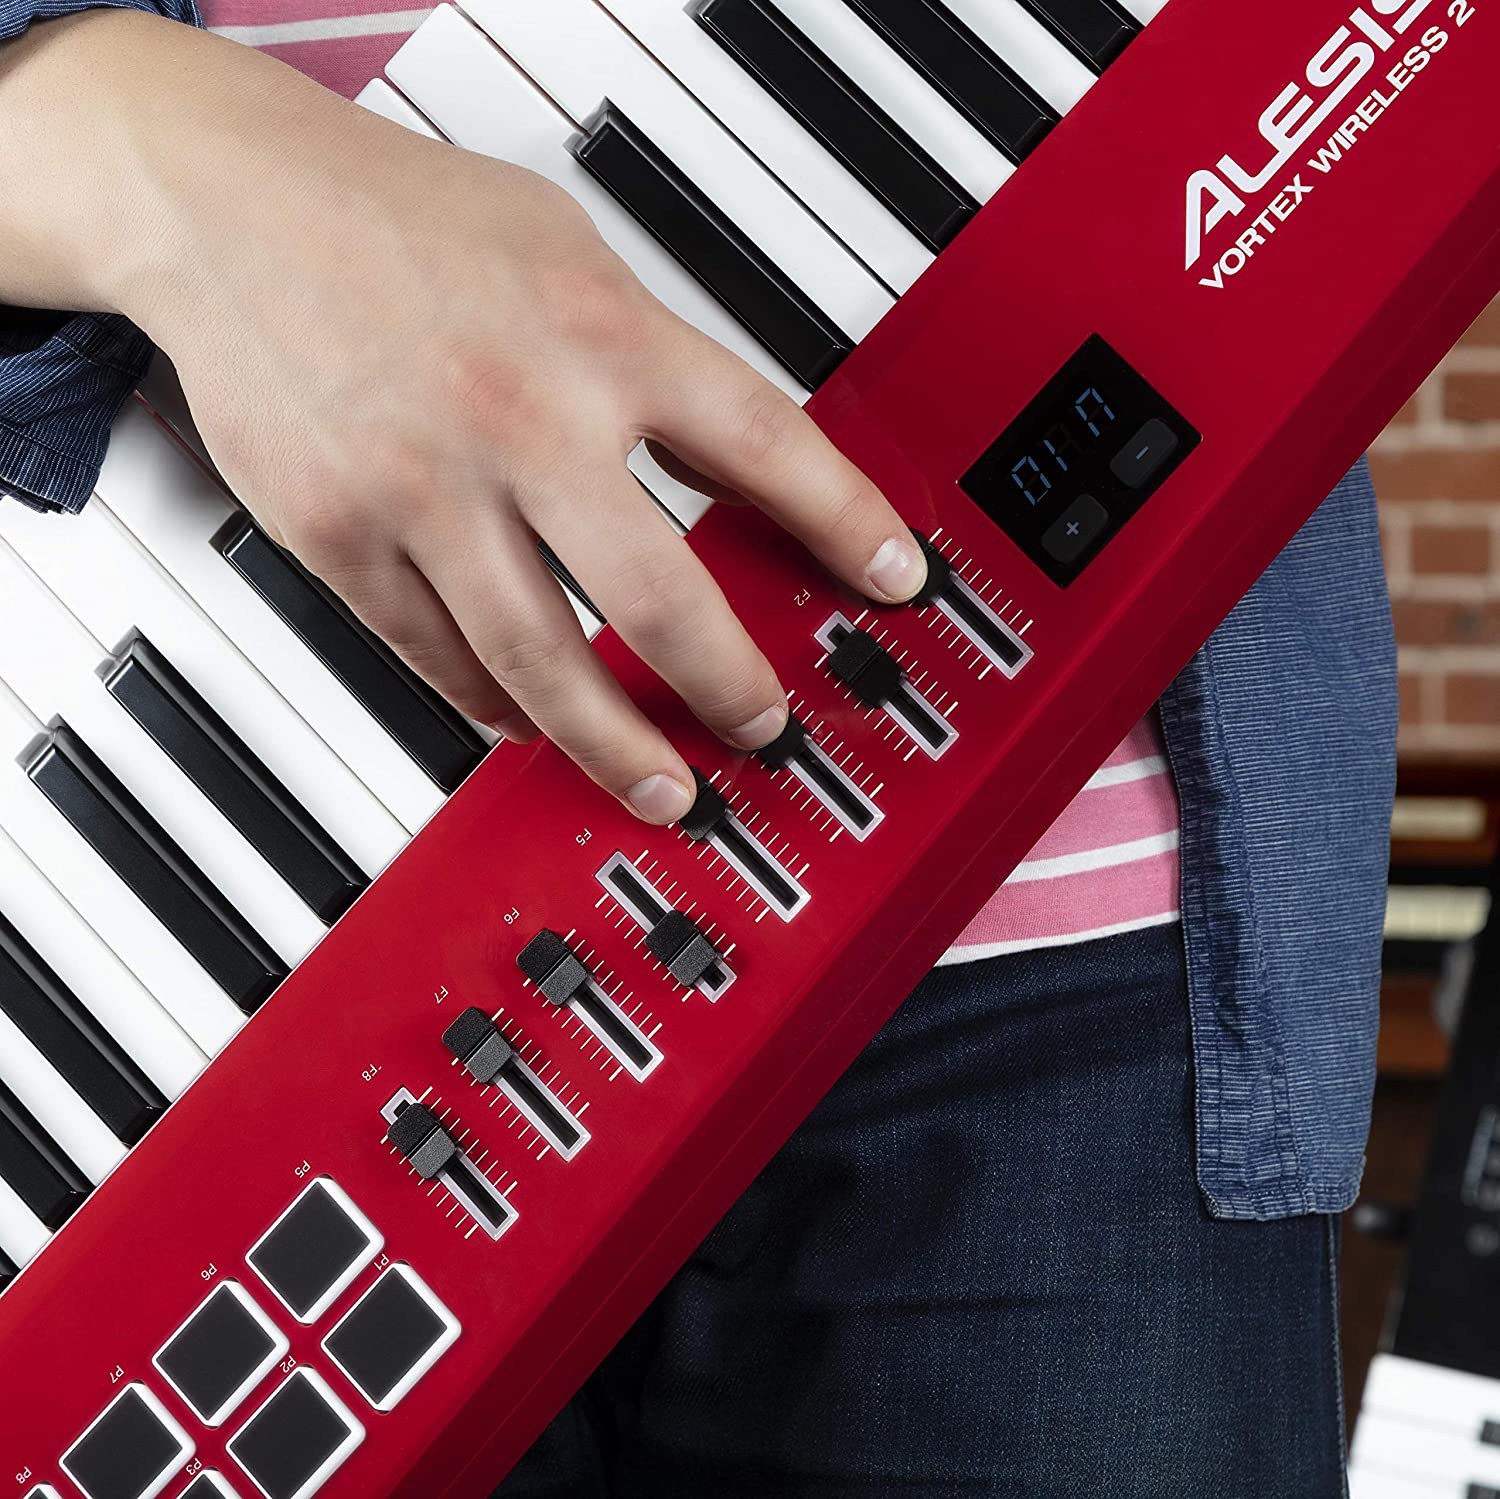 Alesis Vortex Wireless 2 - Controlador Keytar Inalámbrico USB, MIDI de Alto Rendimiento con Suite de Software Premium Incluida, color rojo: Amazon.es: ...